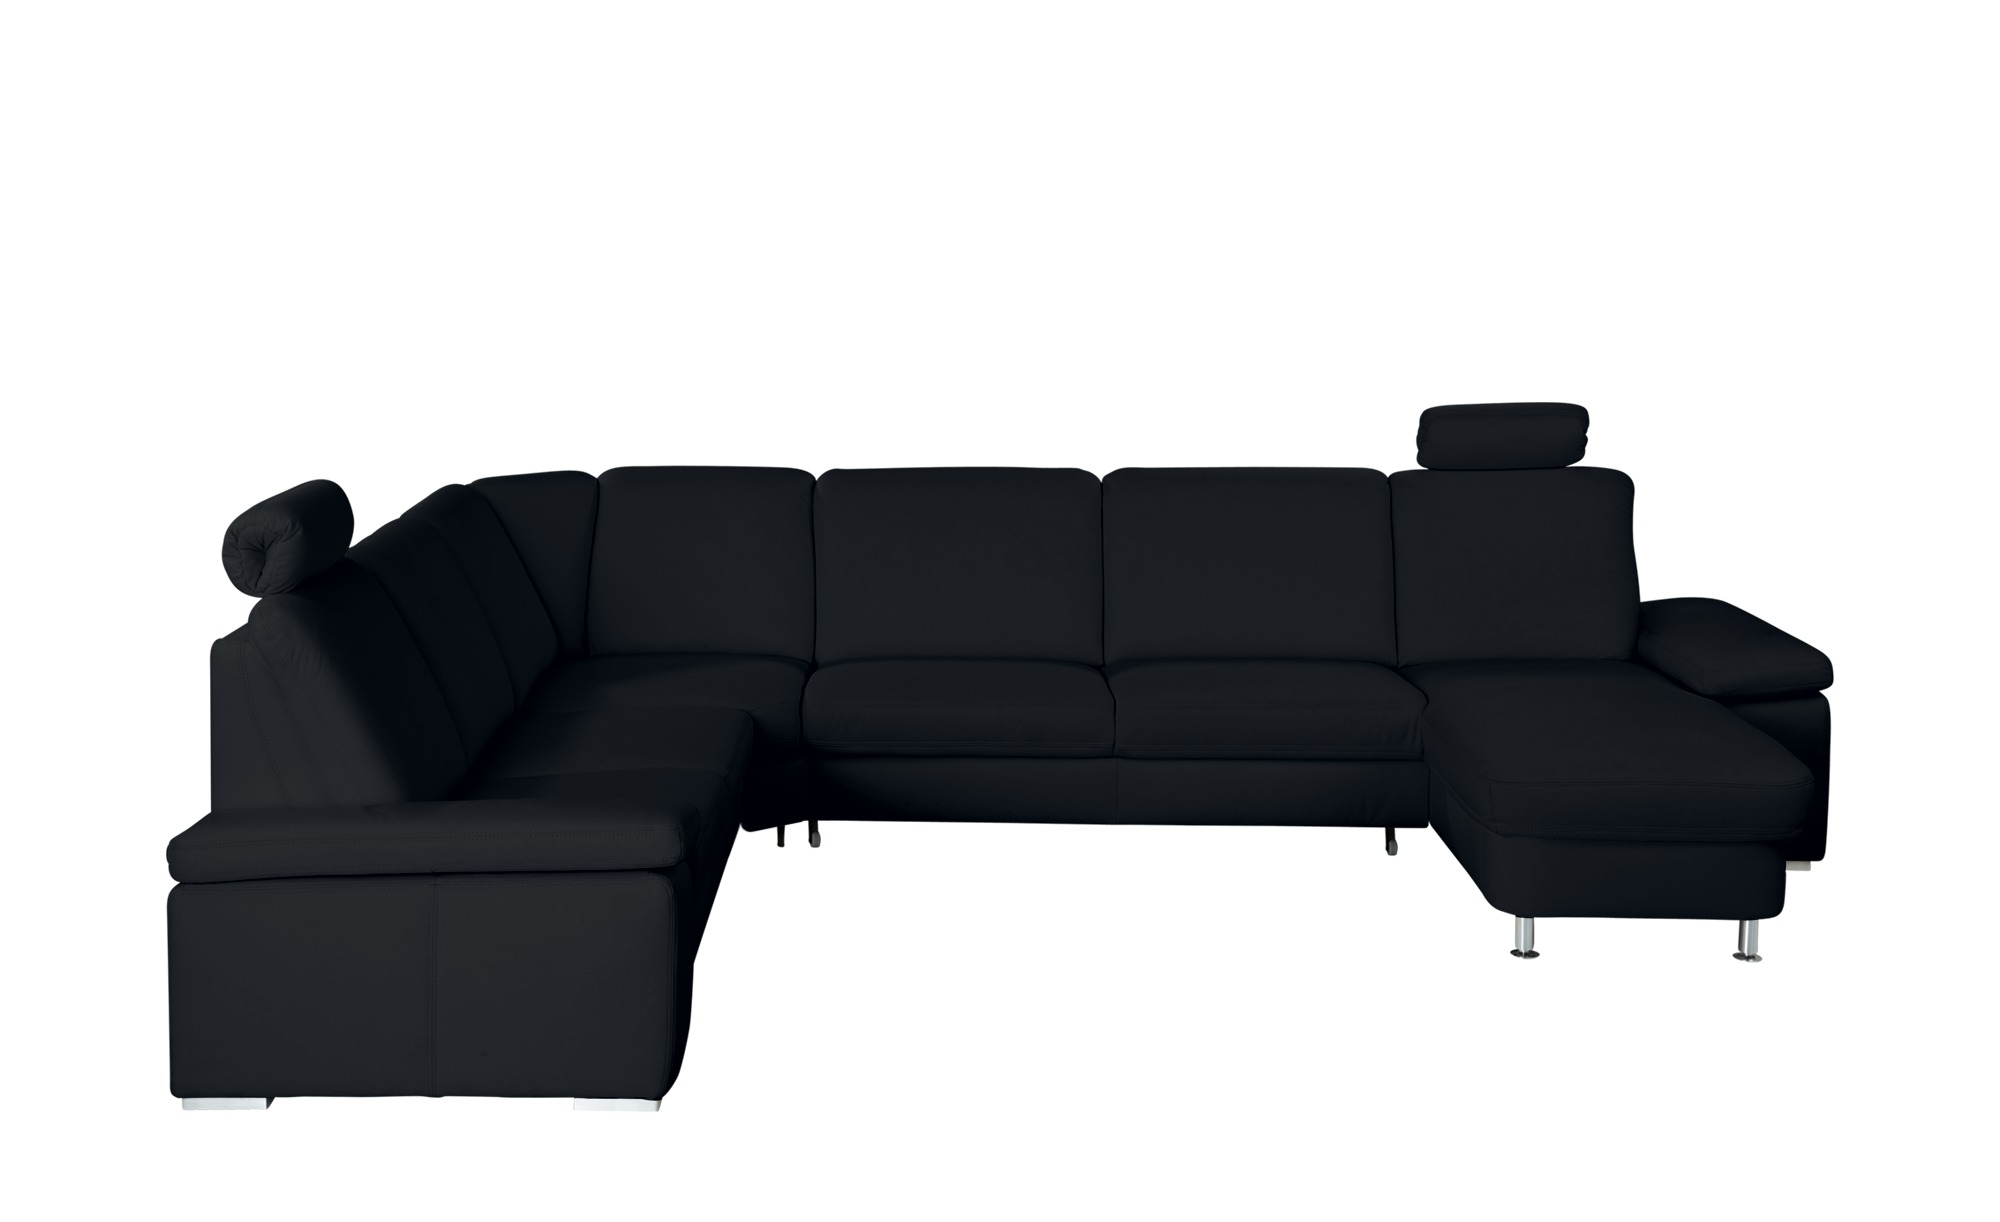 meinsofa leder eckcouch mit funktion elsa breite h he 91. Black Bedroom Furniture Sets. Home Design Ideas